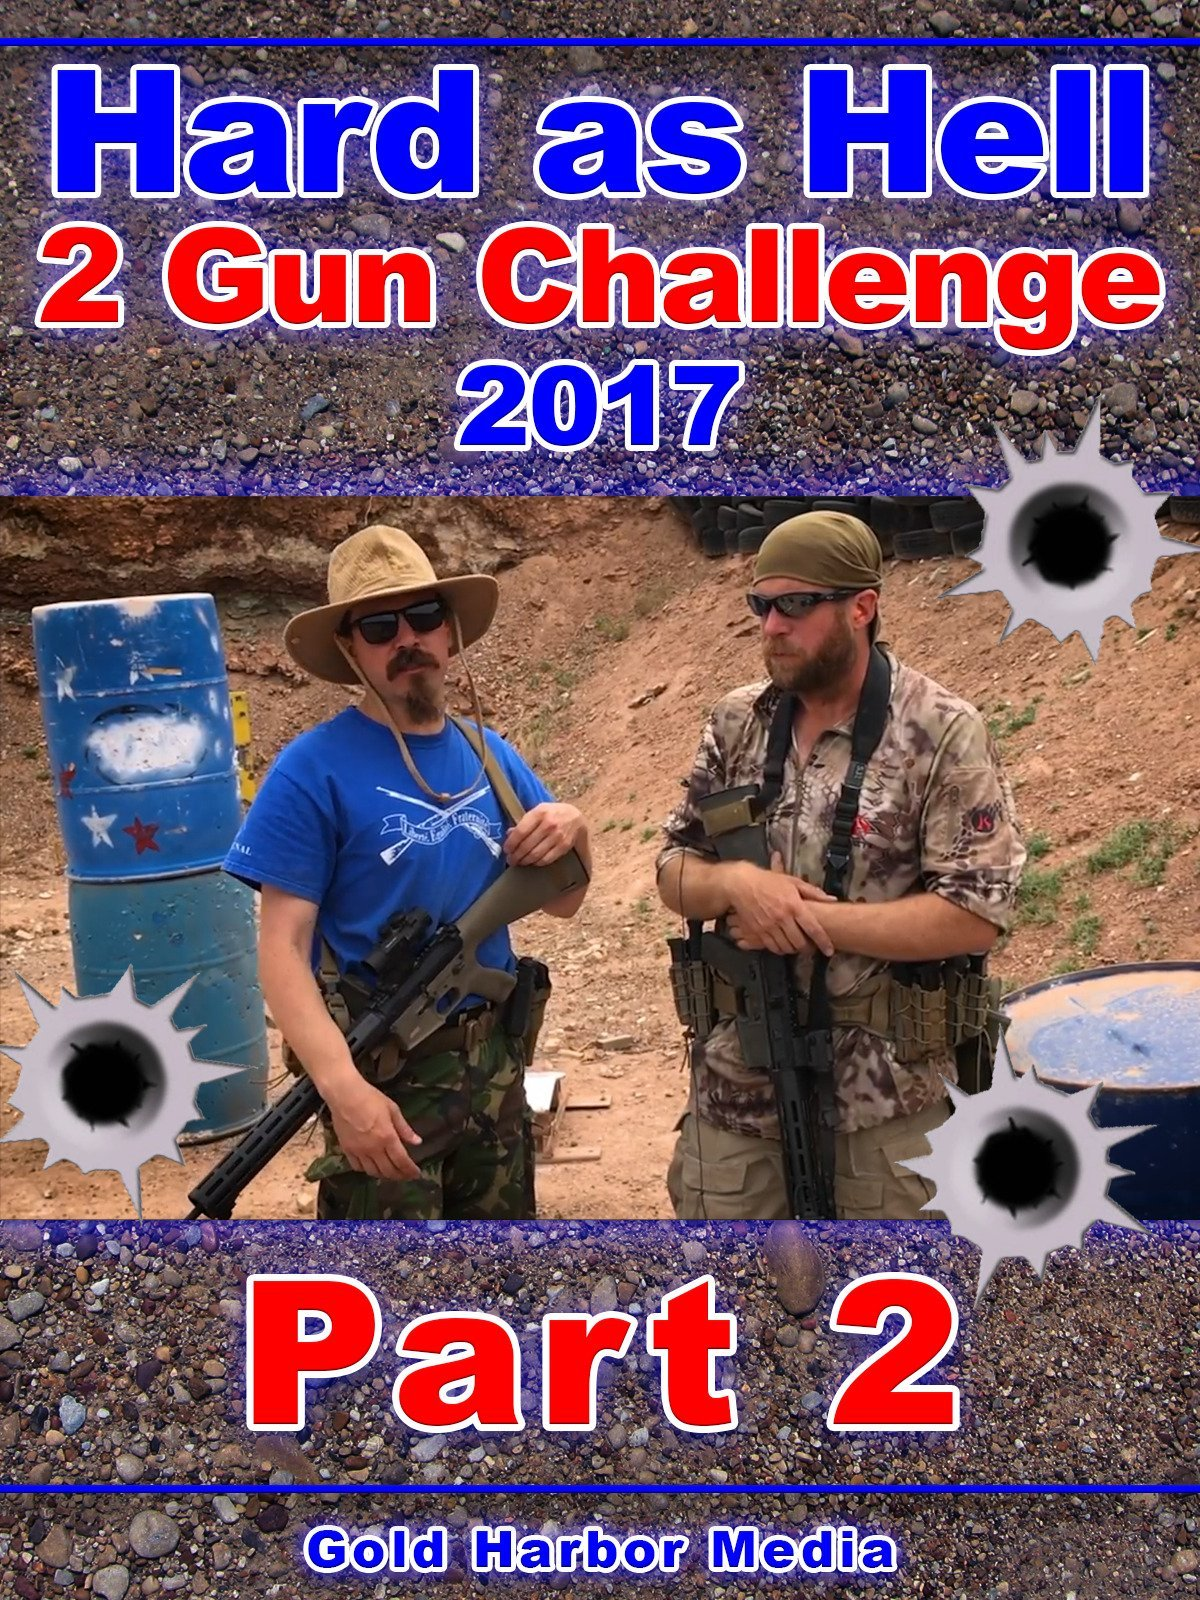 Hard as Hell 2 Gun Challenge 2017: Part 2